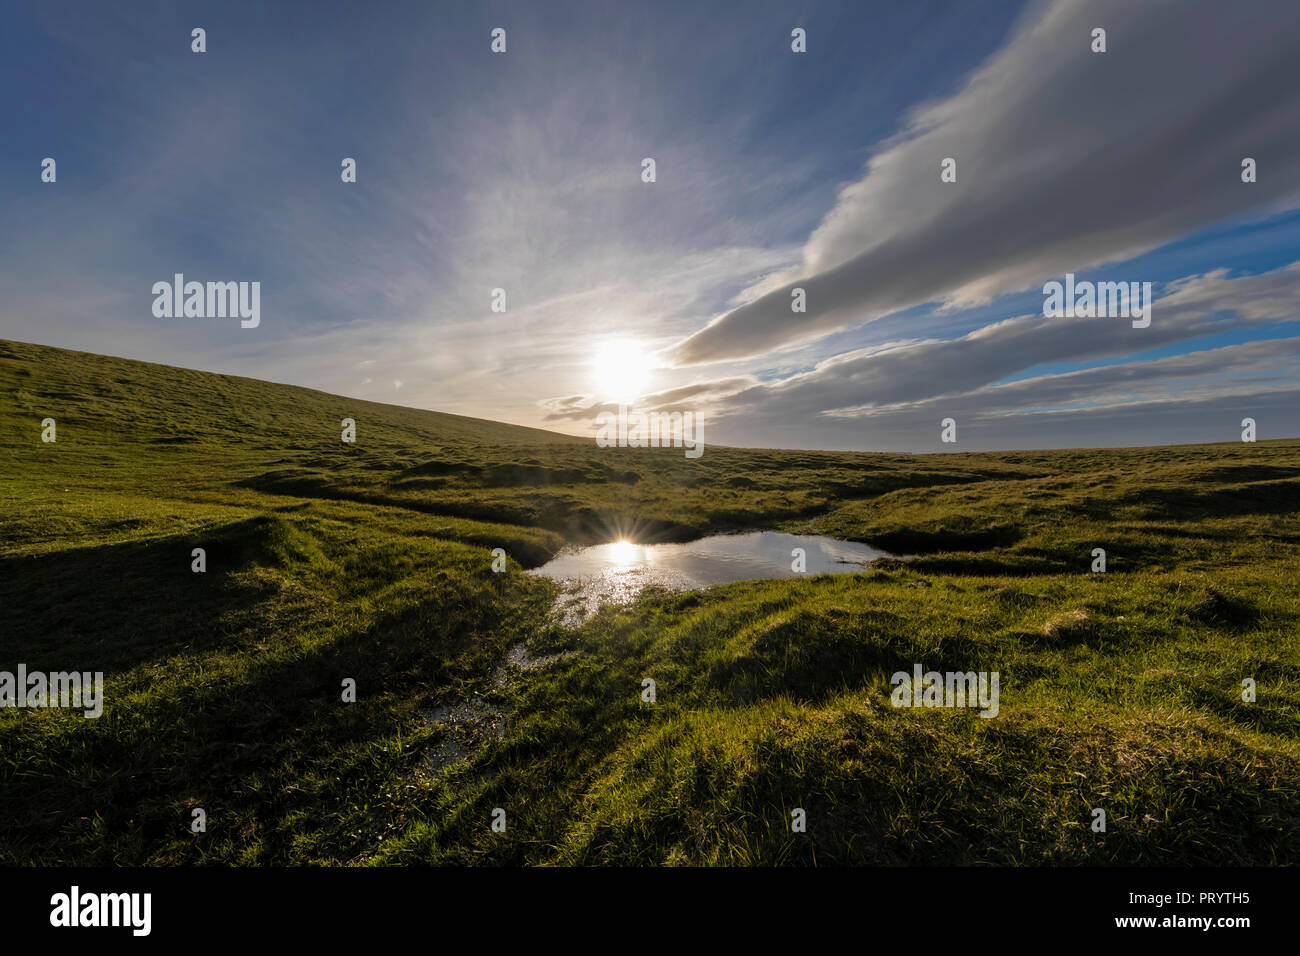 UK, Scotland, Caithness, Duncansby Head - Stock Image